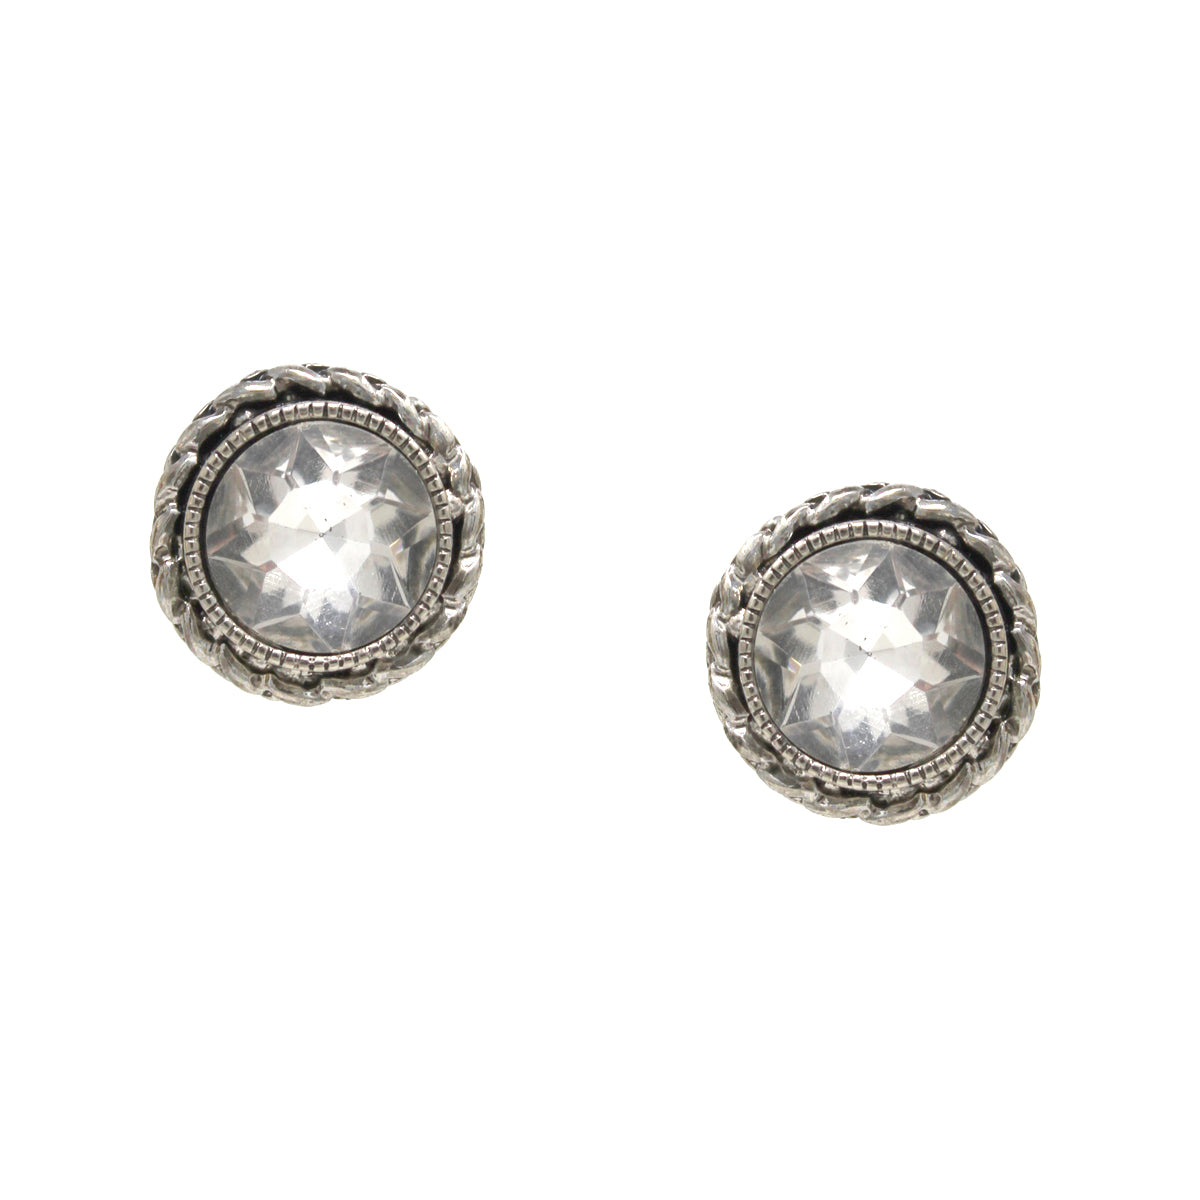 Braided Texture Metal Framed Glass Stone Stud Earrings